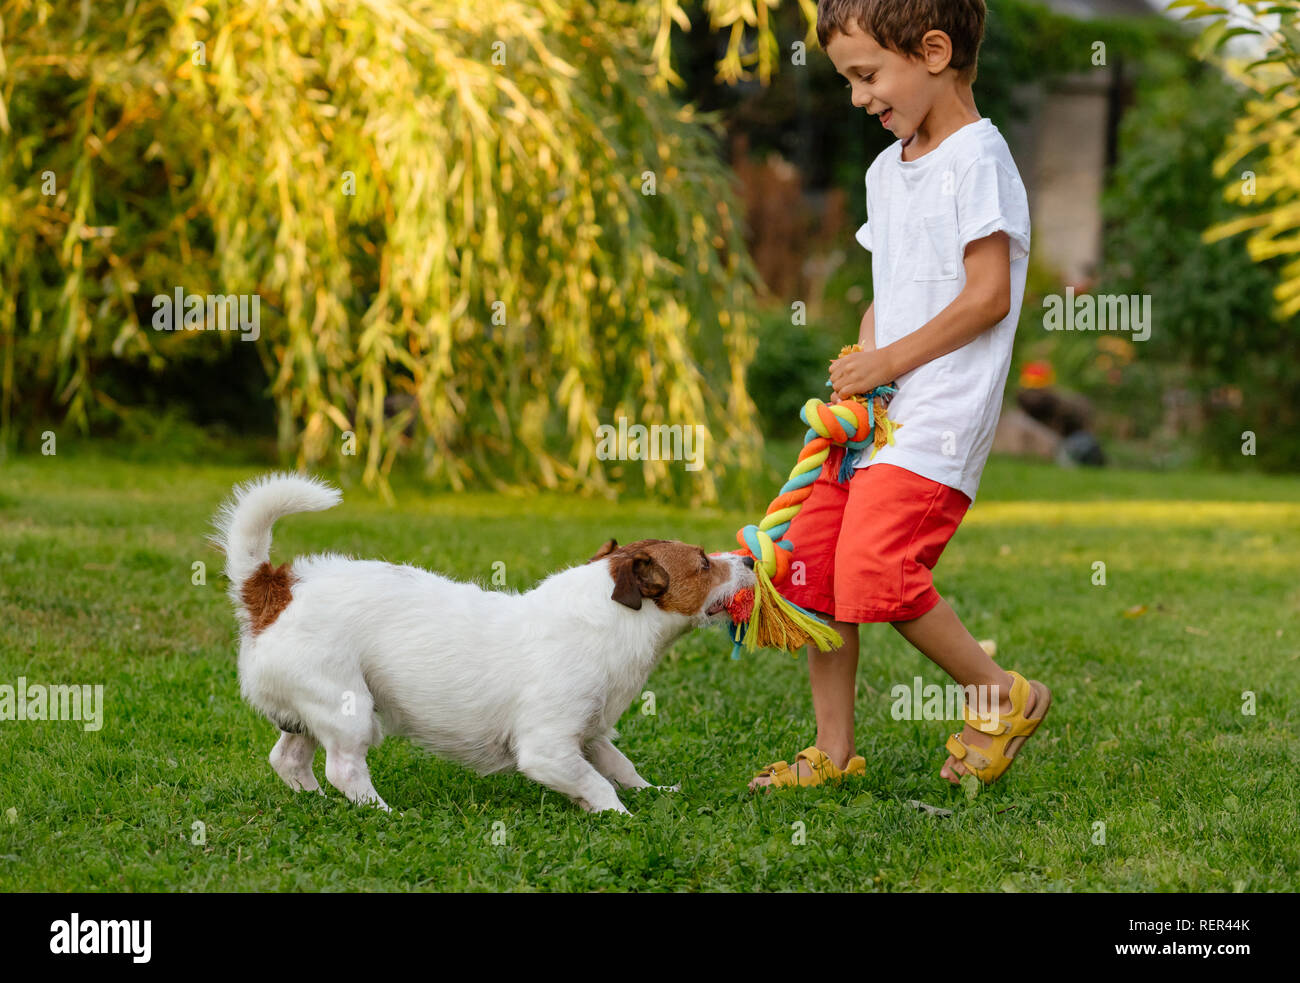 Happy laughing kid boy playing with his dog pulling doggy cotton rope toy - Stock Image